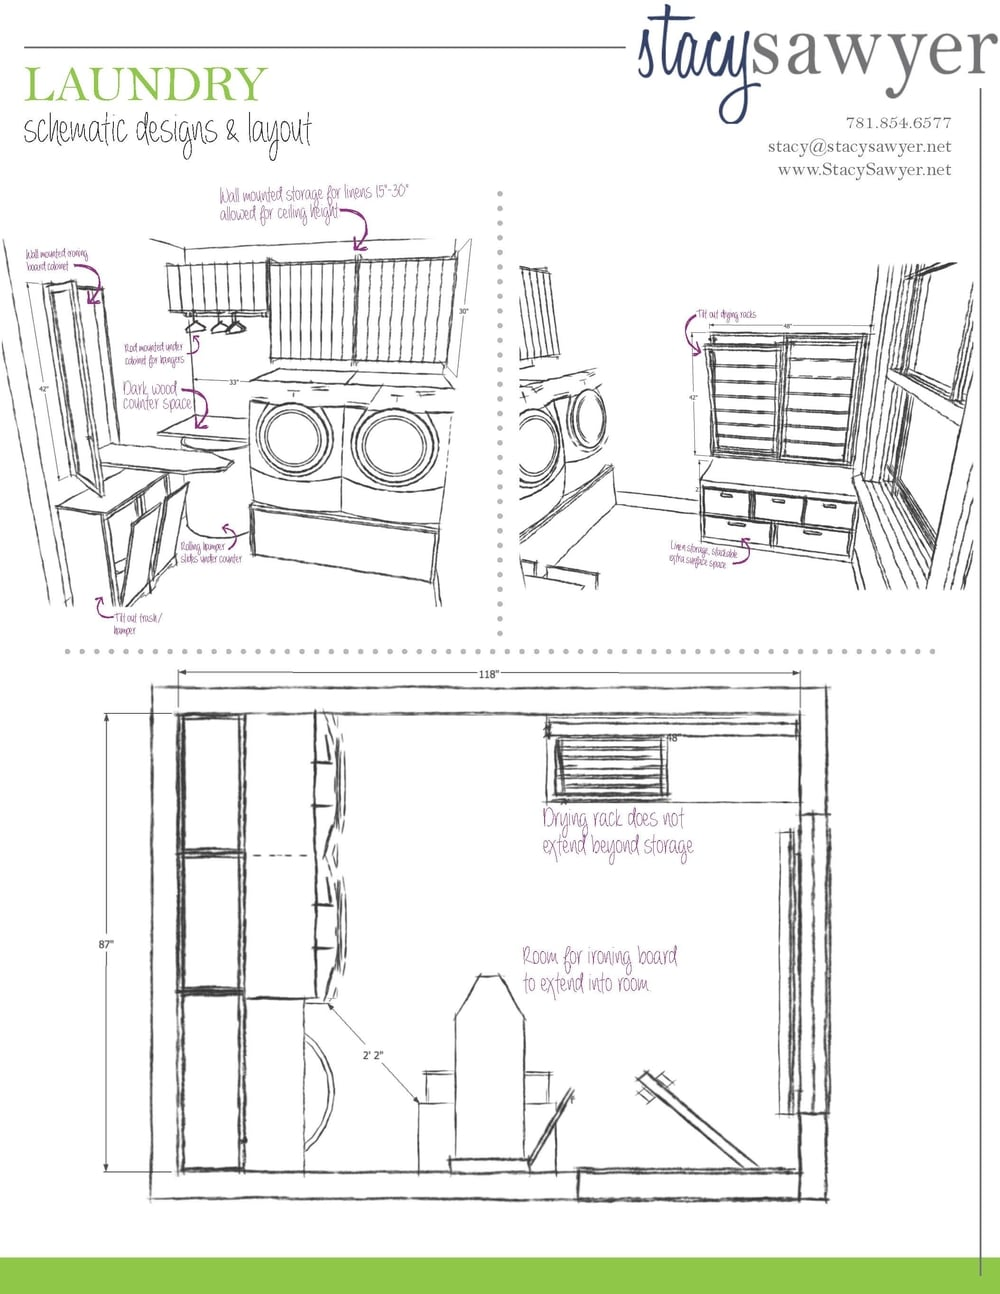 Notes & Laundry Design Boards_Page_4.jpg